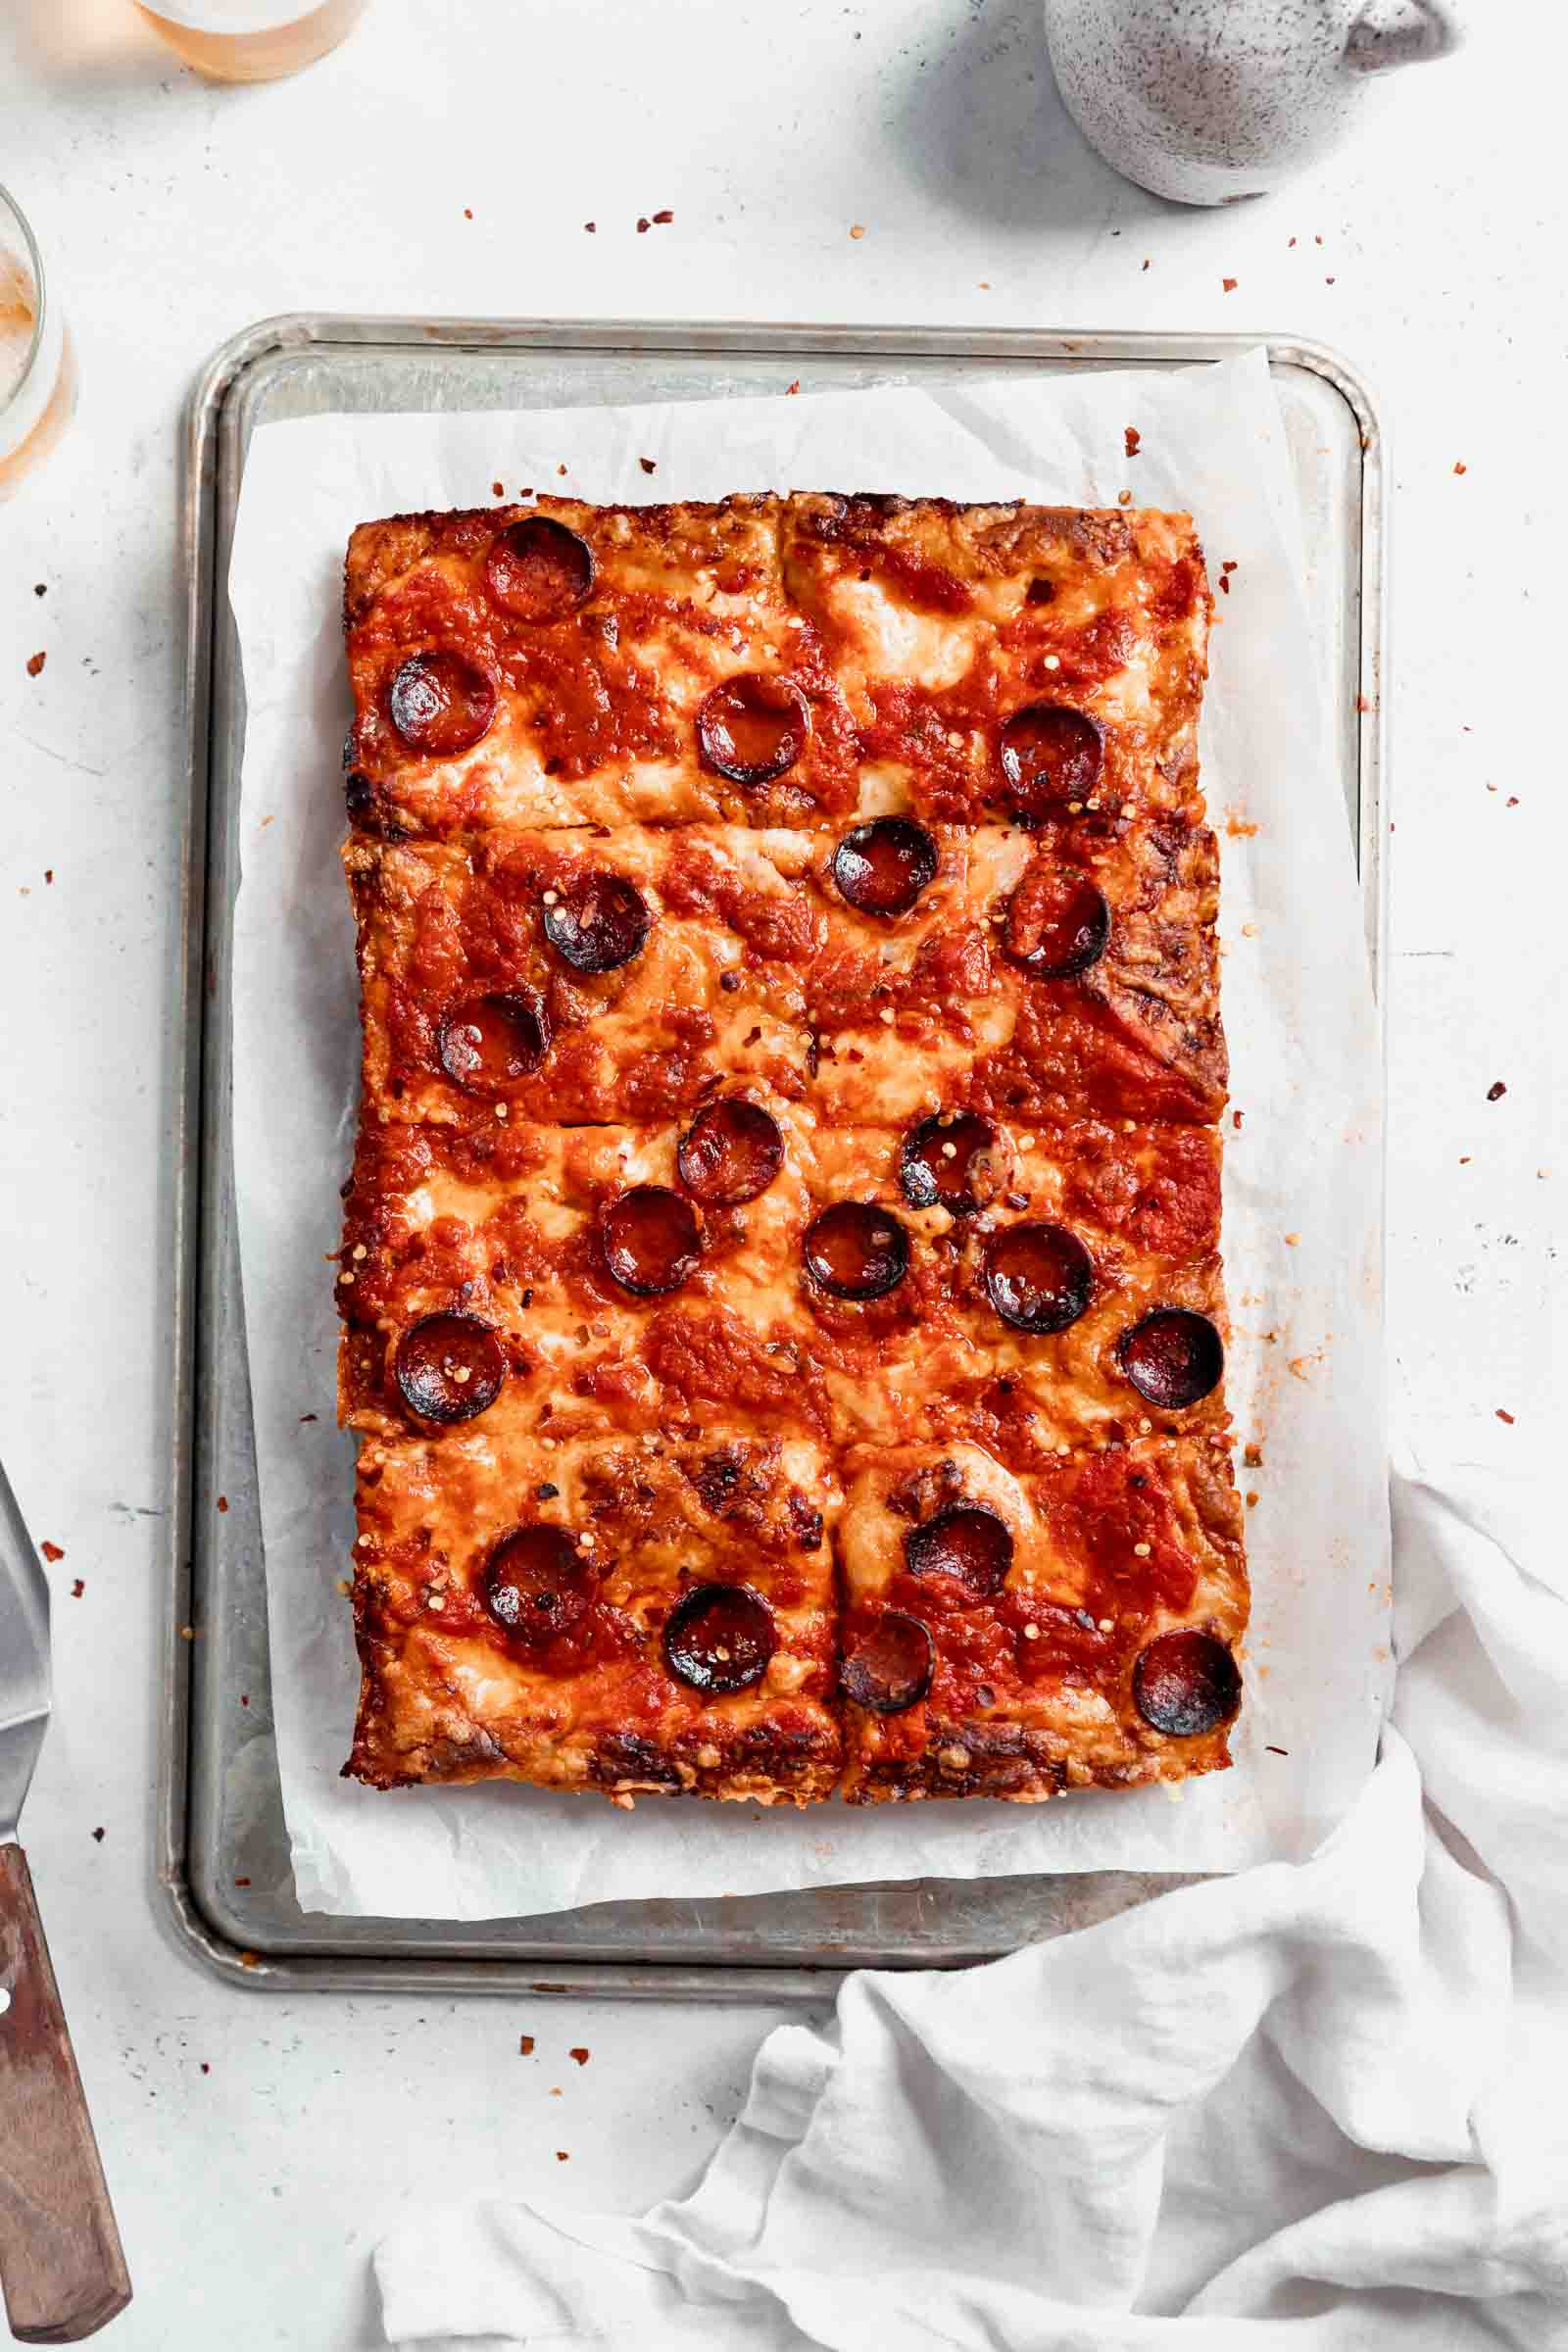 Crispy on the outside, chewy in the middle, Detroit-Style Pizza topped with two pounds of cheese, sauce, and your choice of topping. Um, can you say drool?